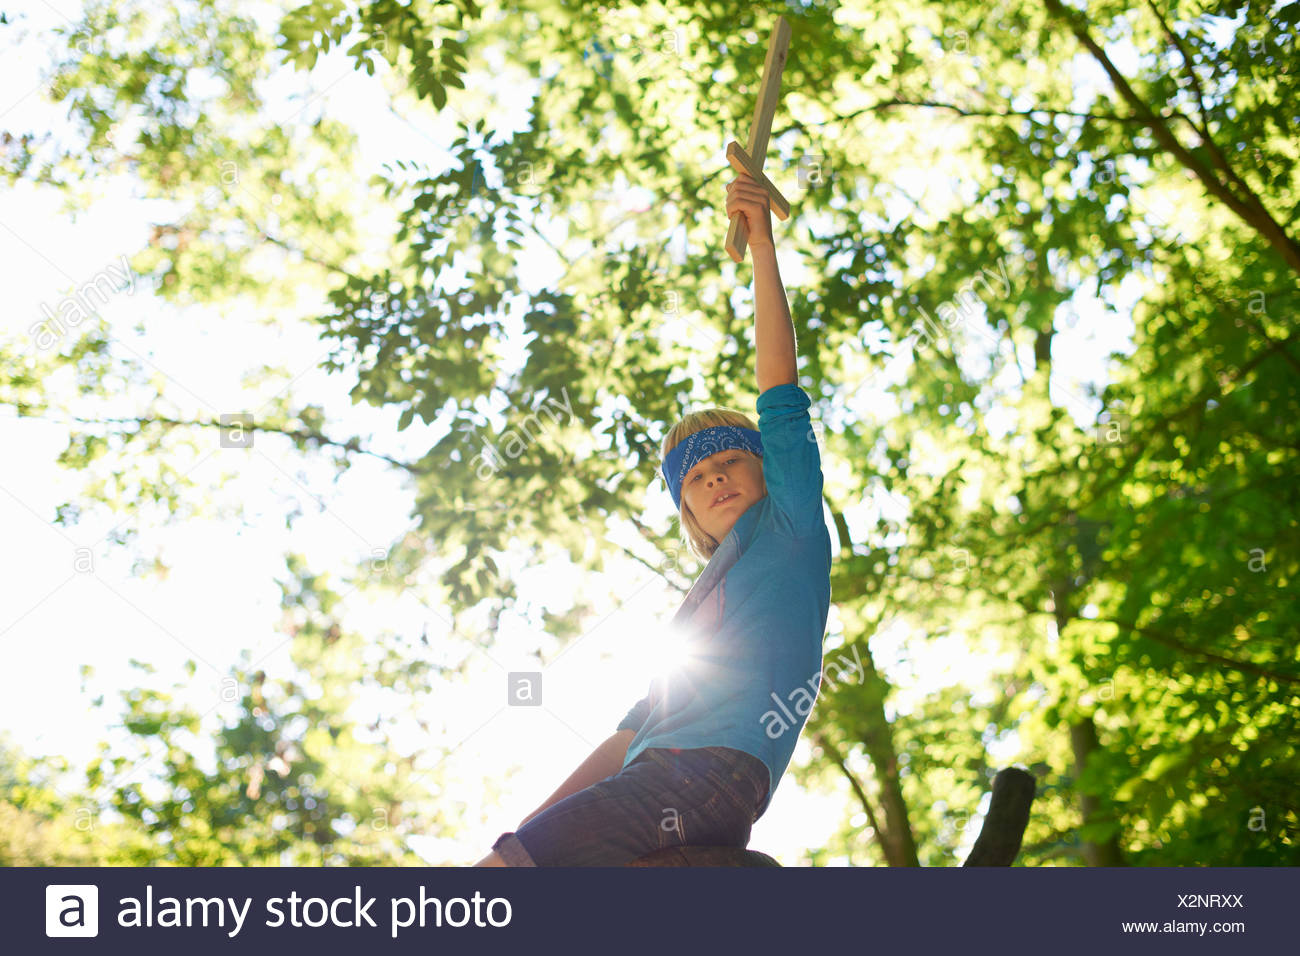 One young boy with toy sword, sitting on tree branch - Stock Image